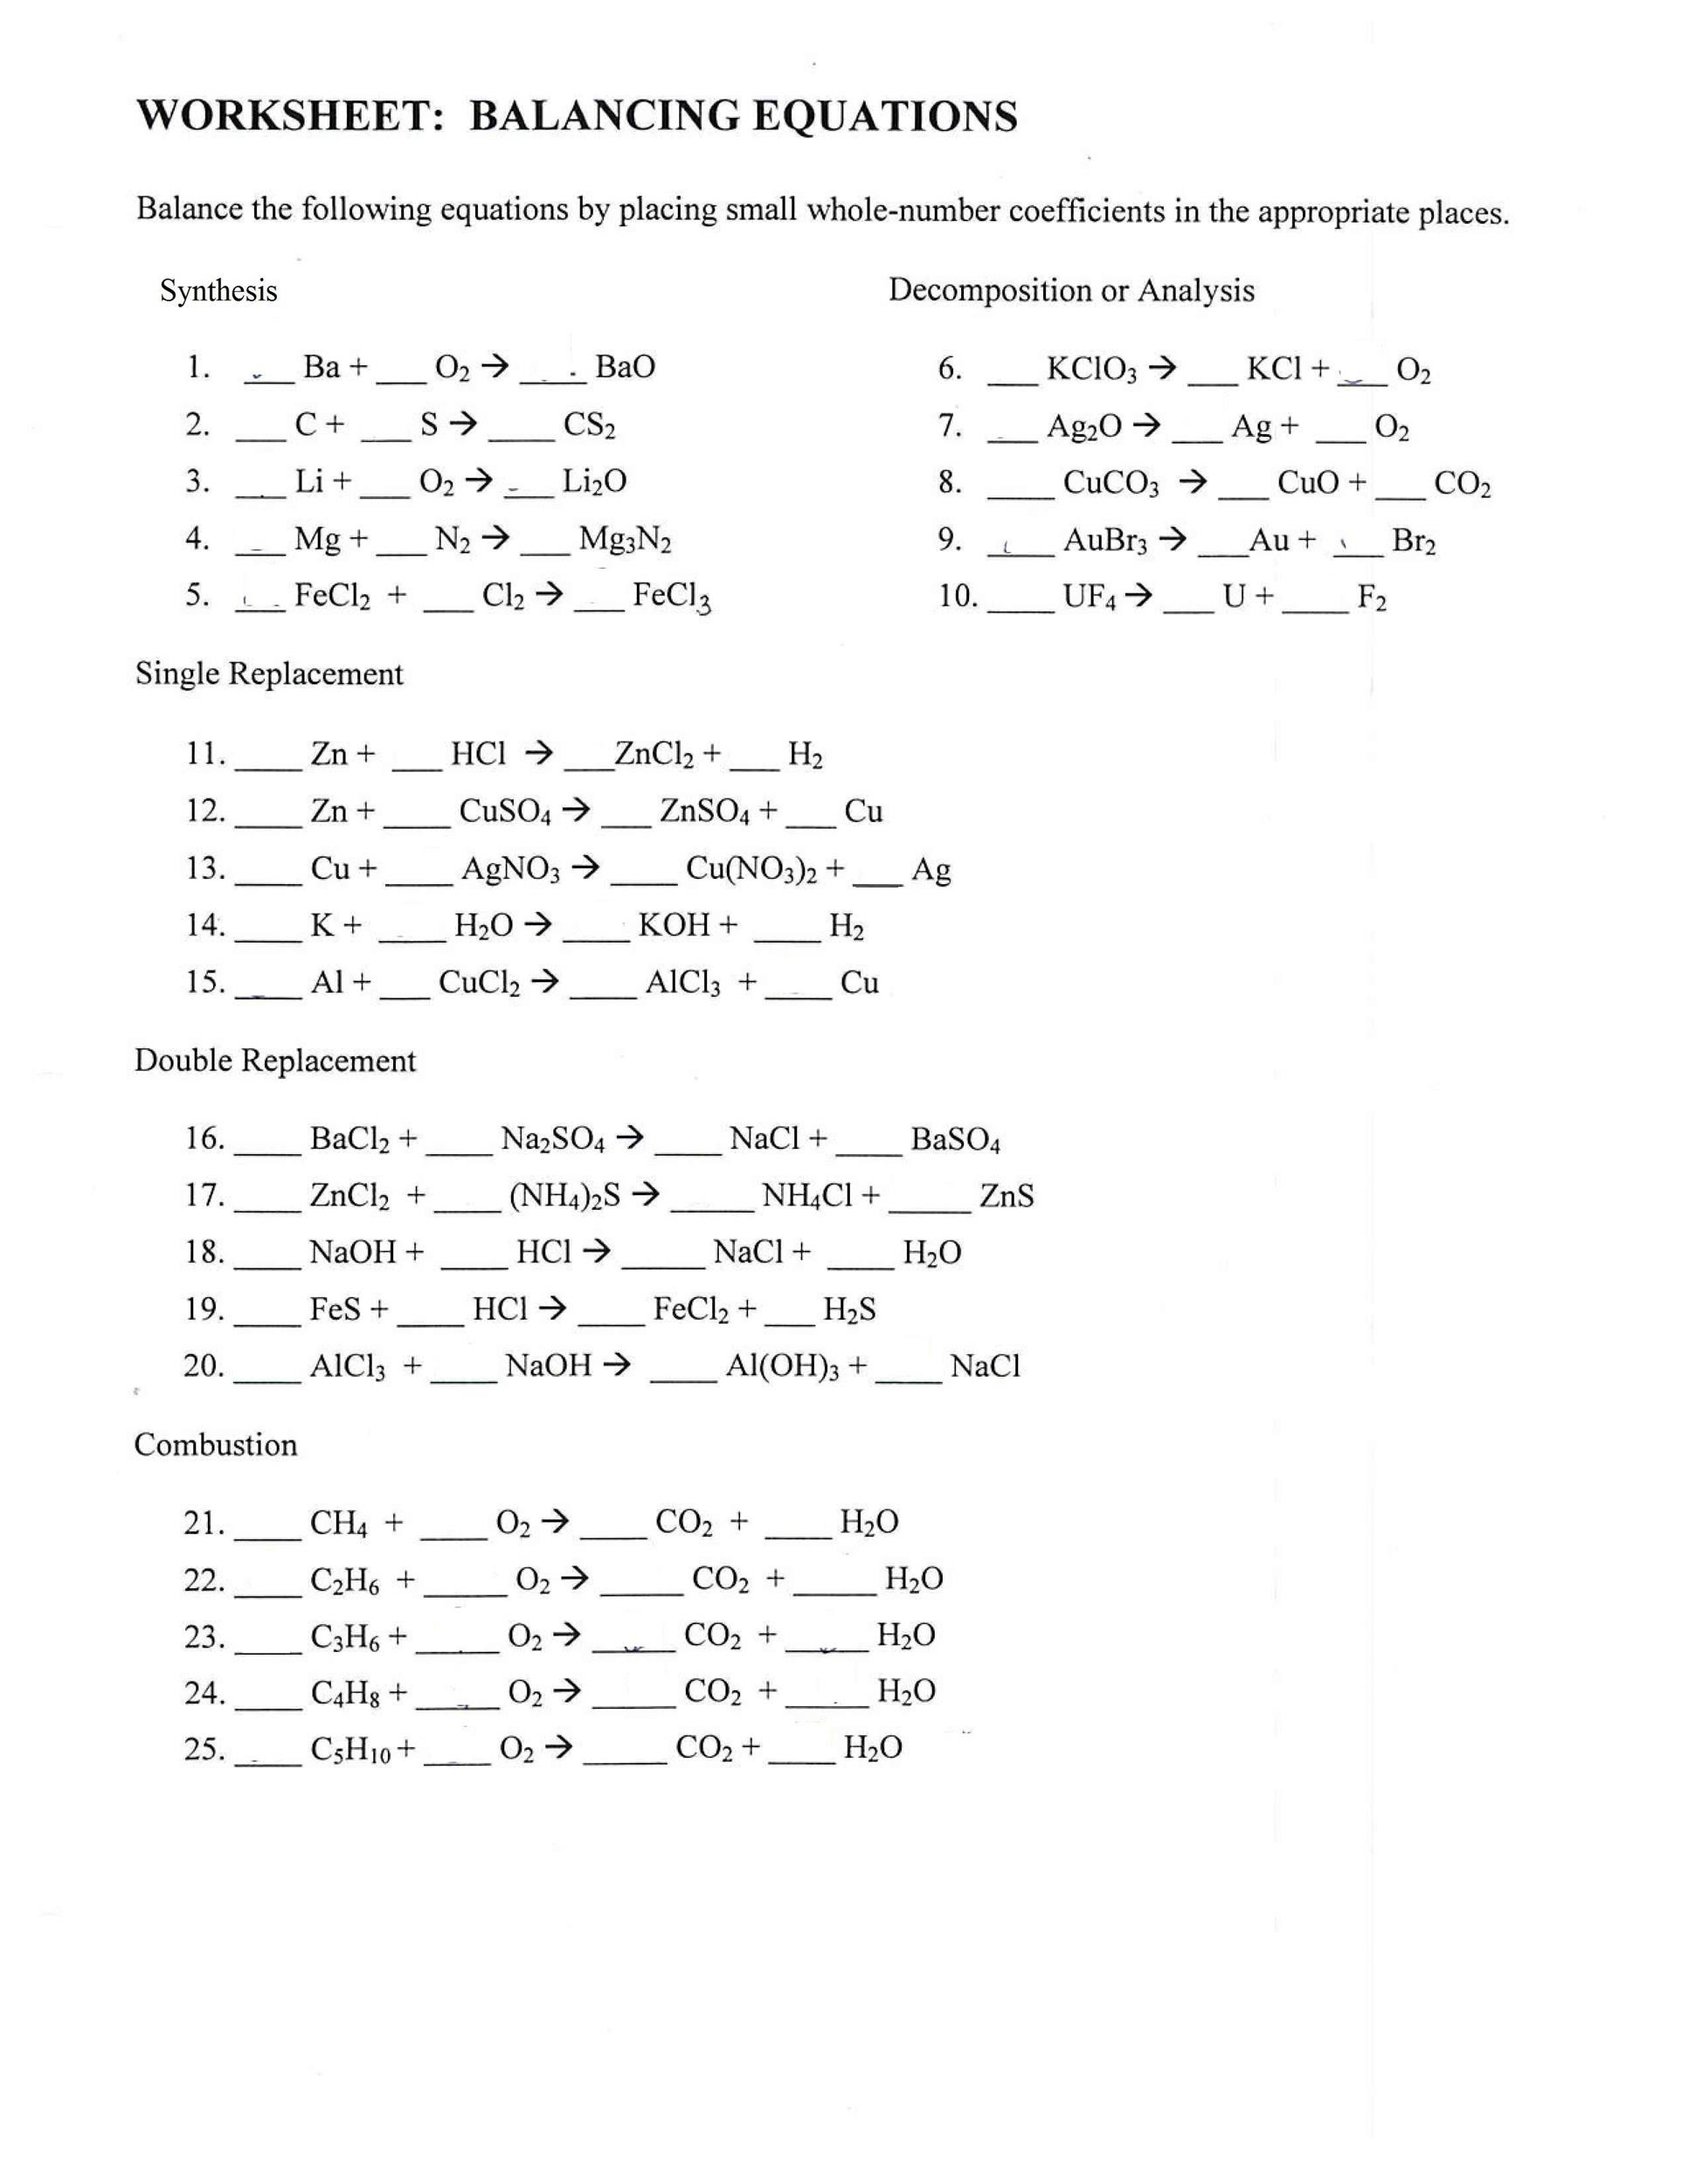 30 Balancing Equations Practice Worksheet Answers - Free ...